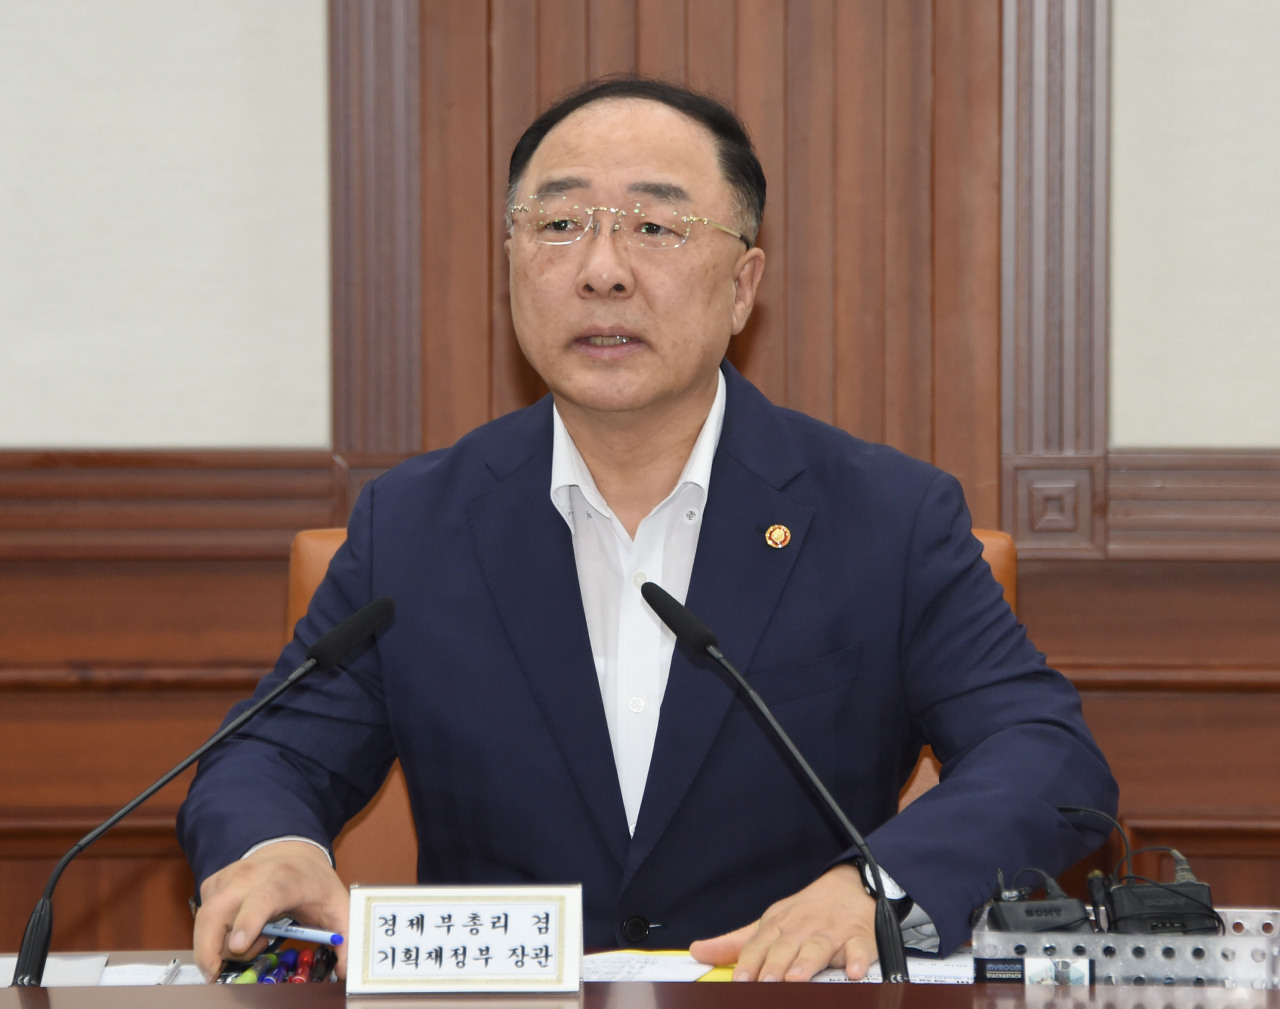 Deputy Prime Minister and Finance Minister Hong Nam-ki on Monday chairs a ministerial meeting for countermeasures against Japan's export curbs. (Ministry of Economy and Finance)